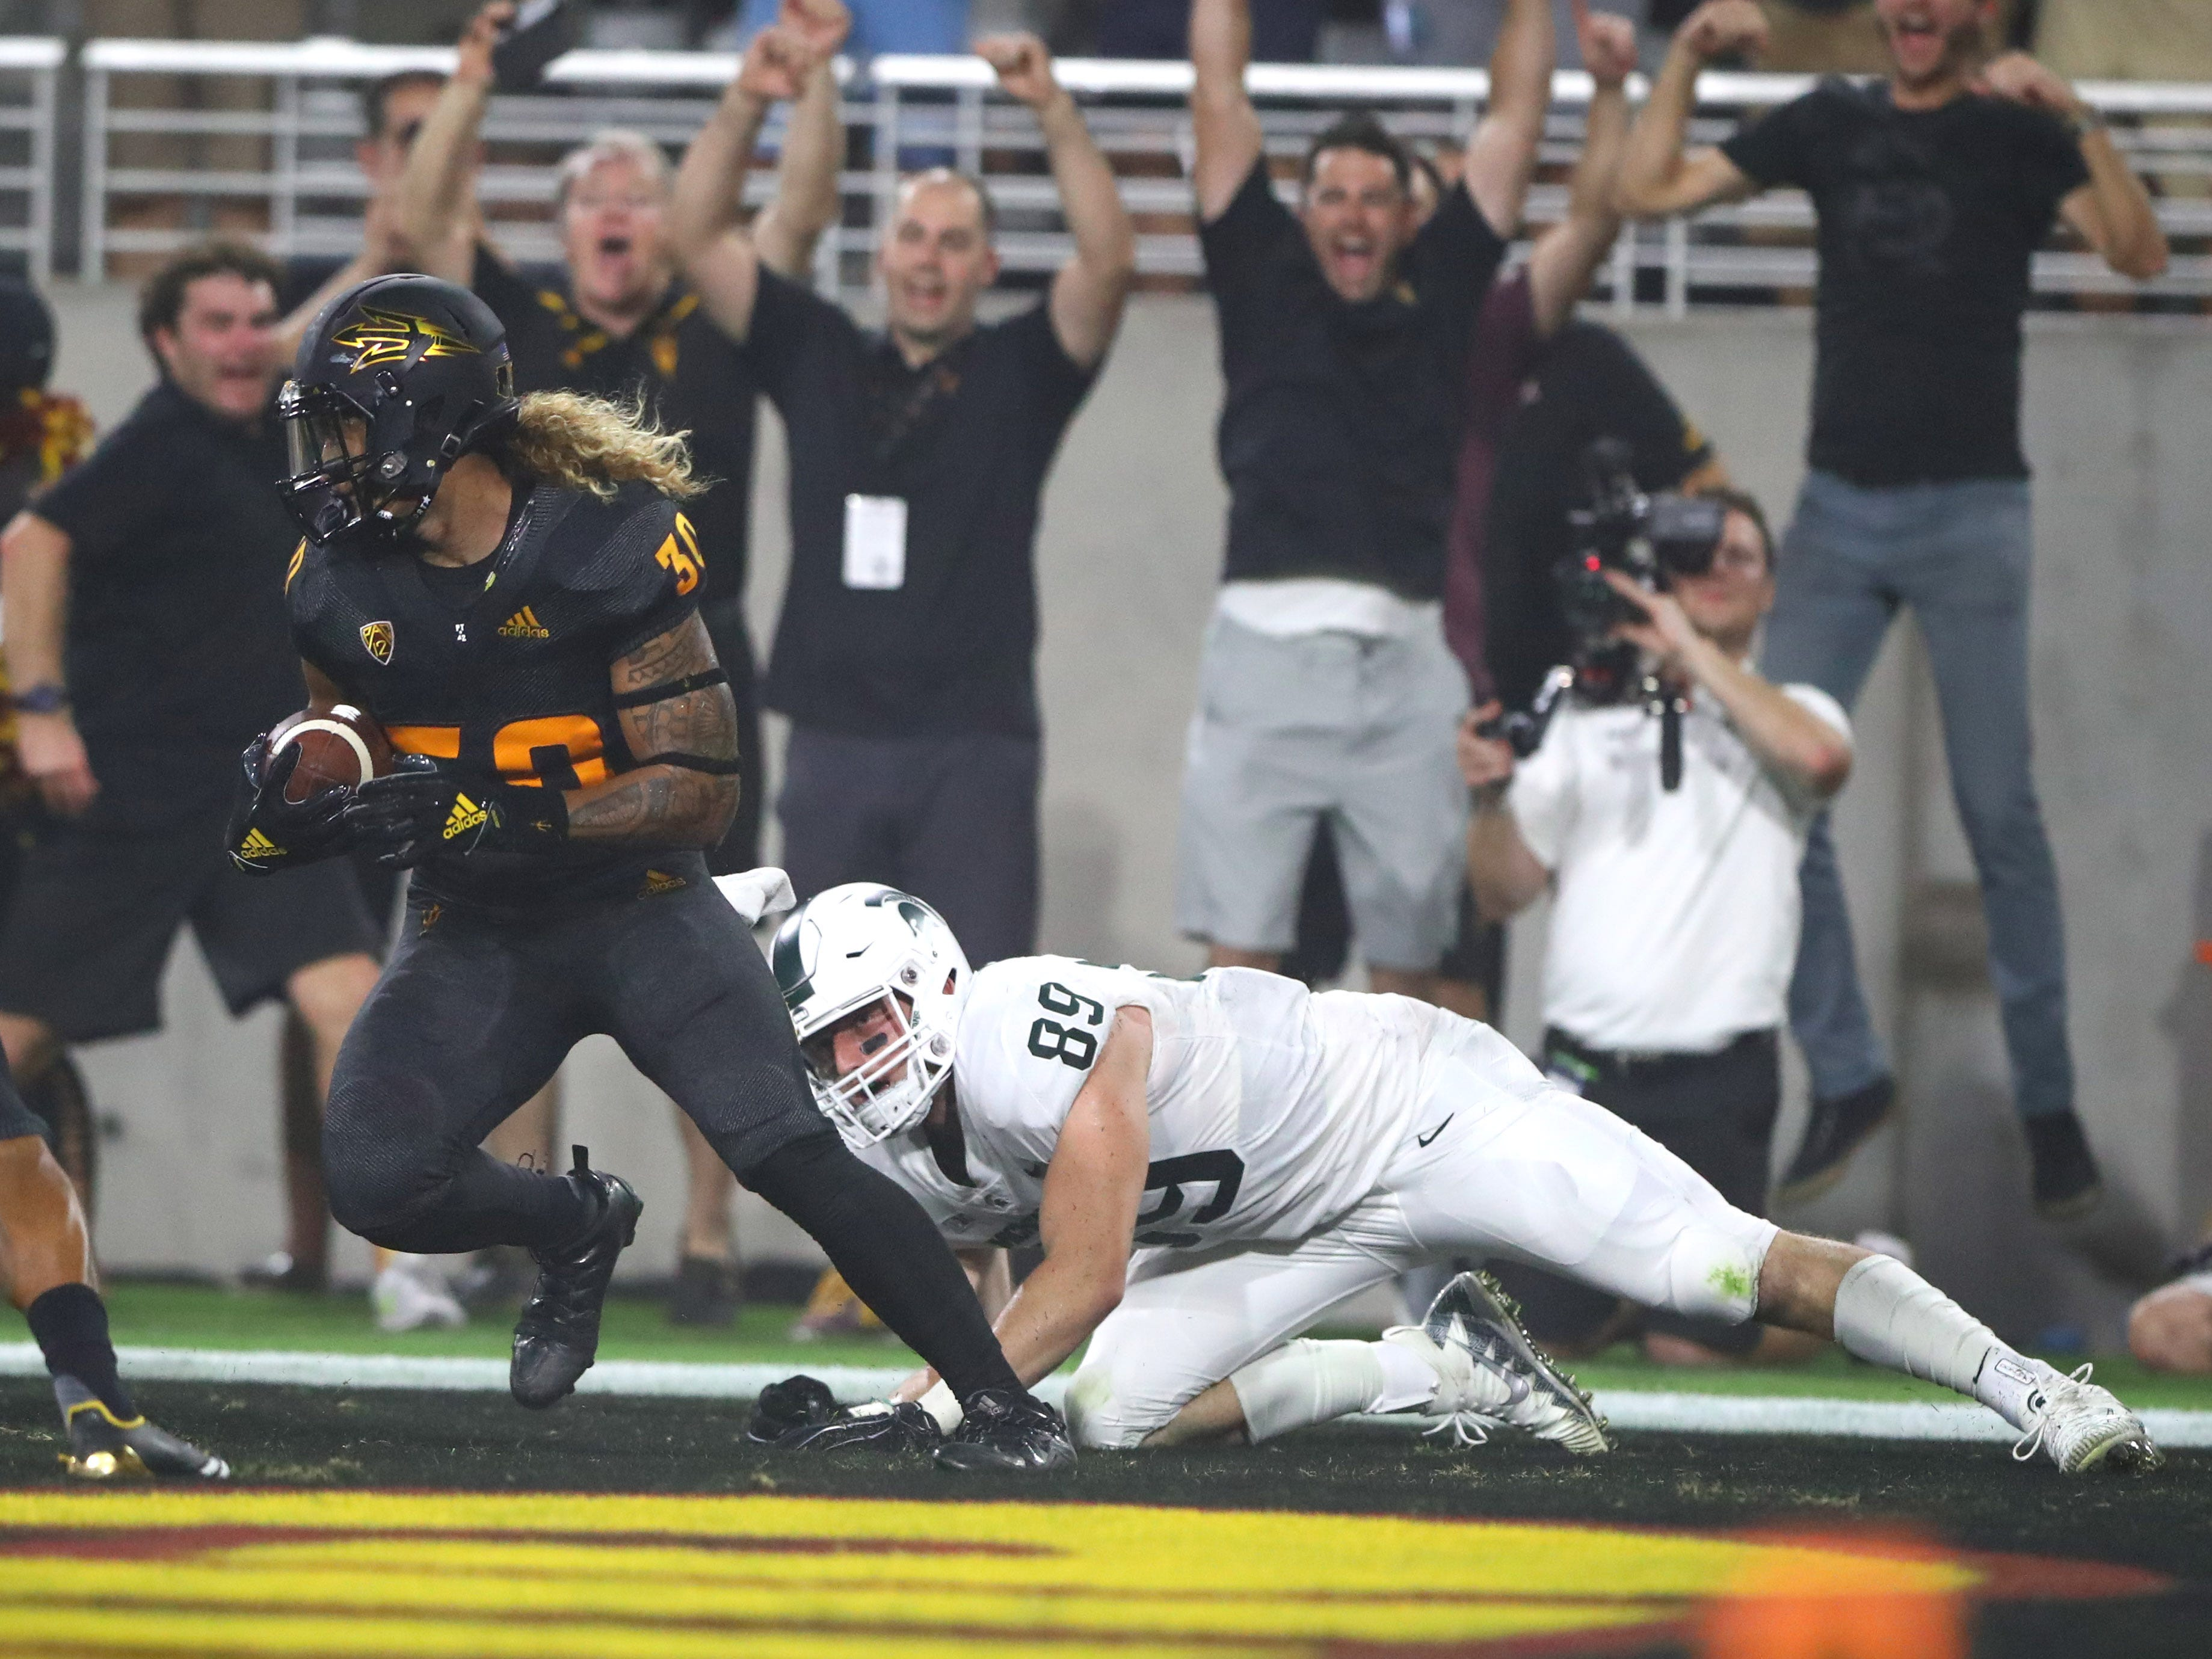 Arizona State Sun Devils defensive back Dasmond Tautalatasi (30) intercepts the ball against Michigan State Spartans tight end Matt Dotson (89) in the first half at Sun Devil Stadium.